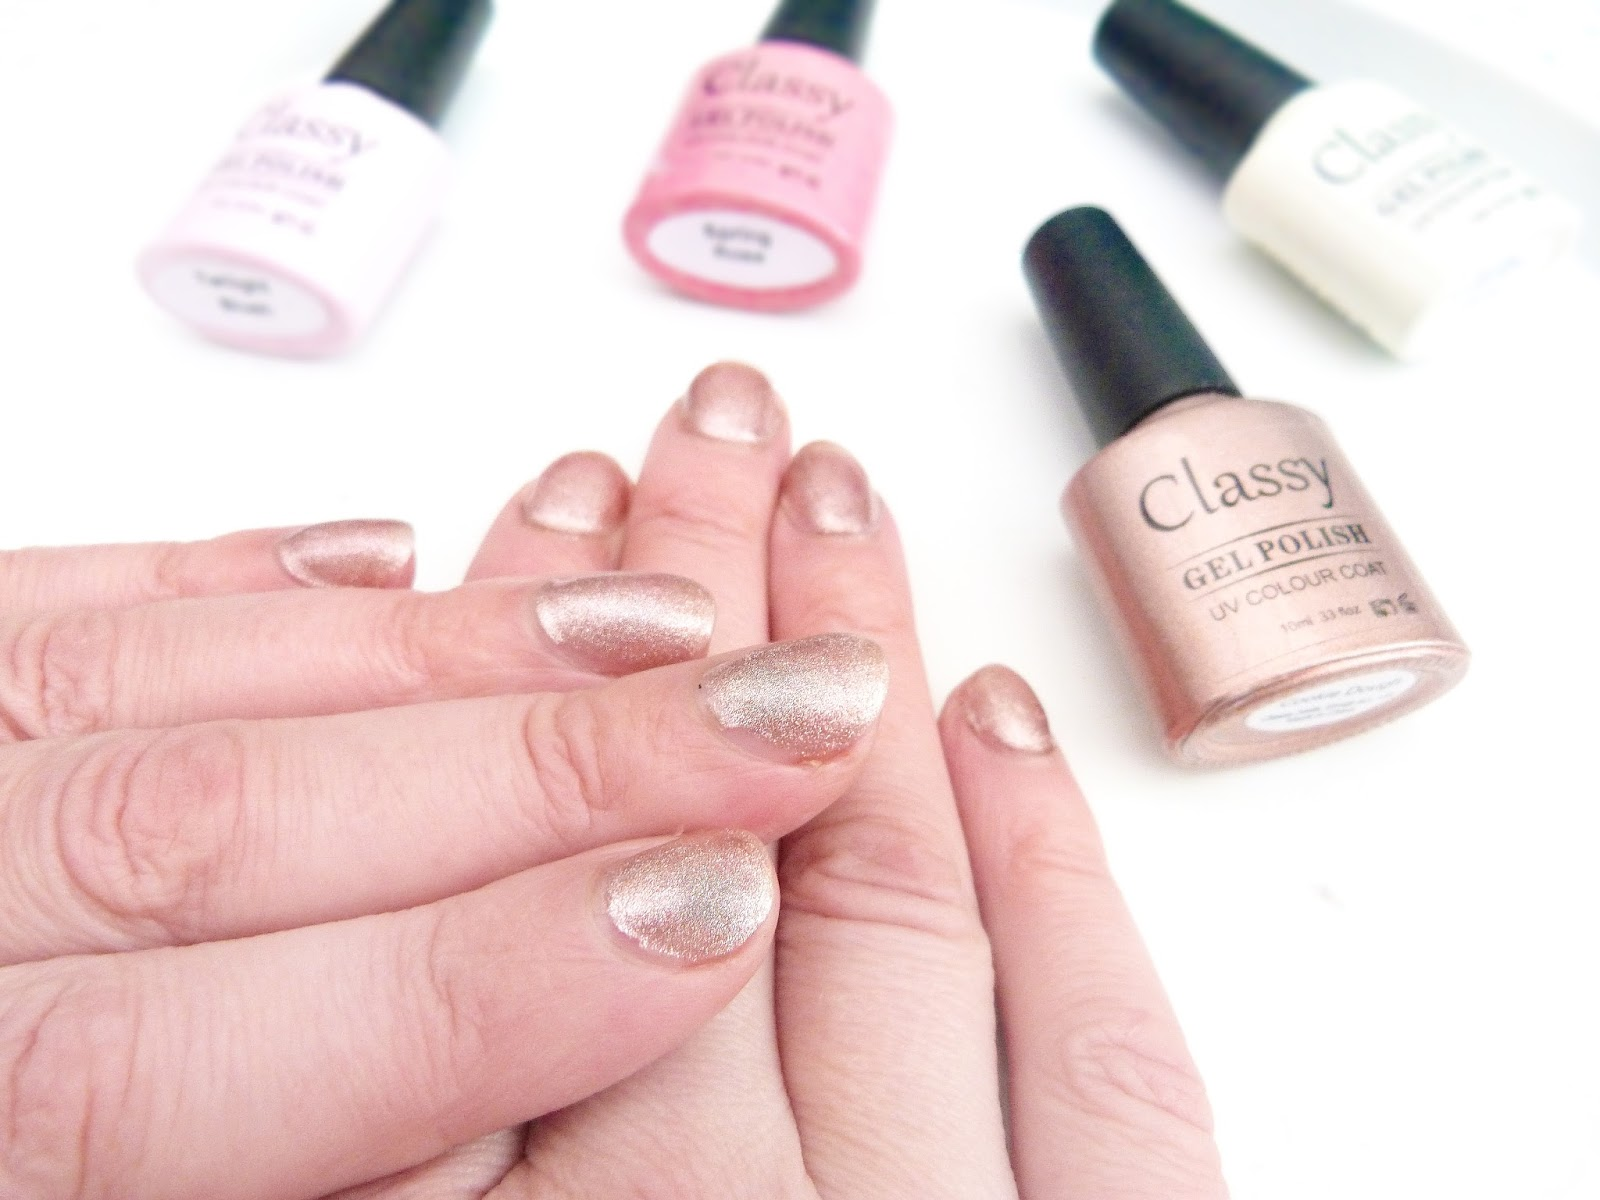 Dainty Alice DIY Gel Nails